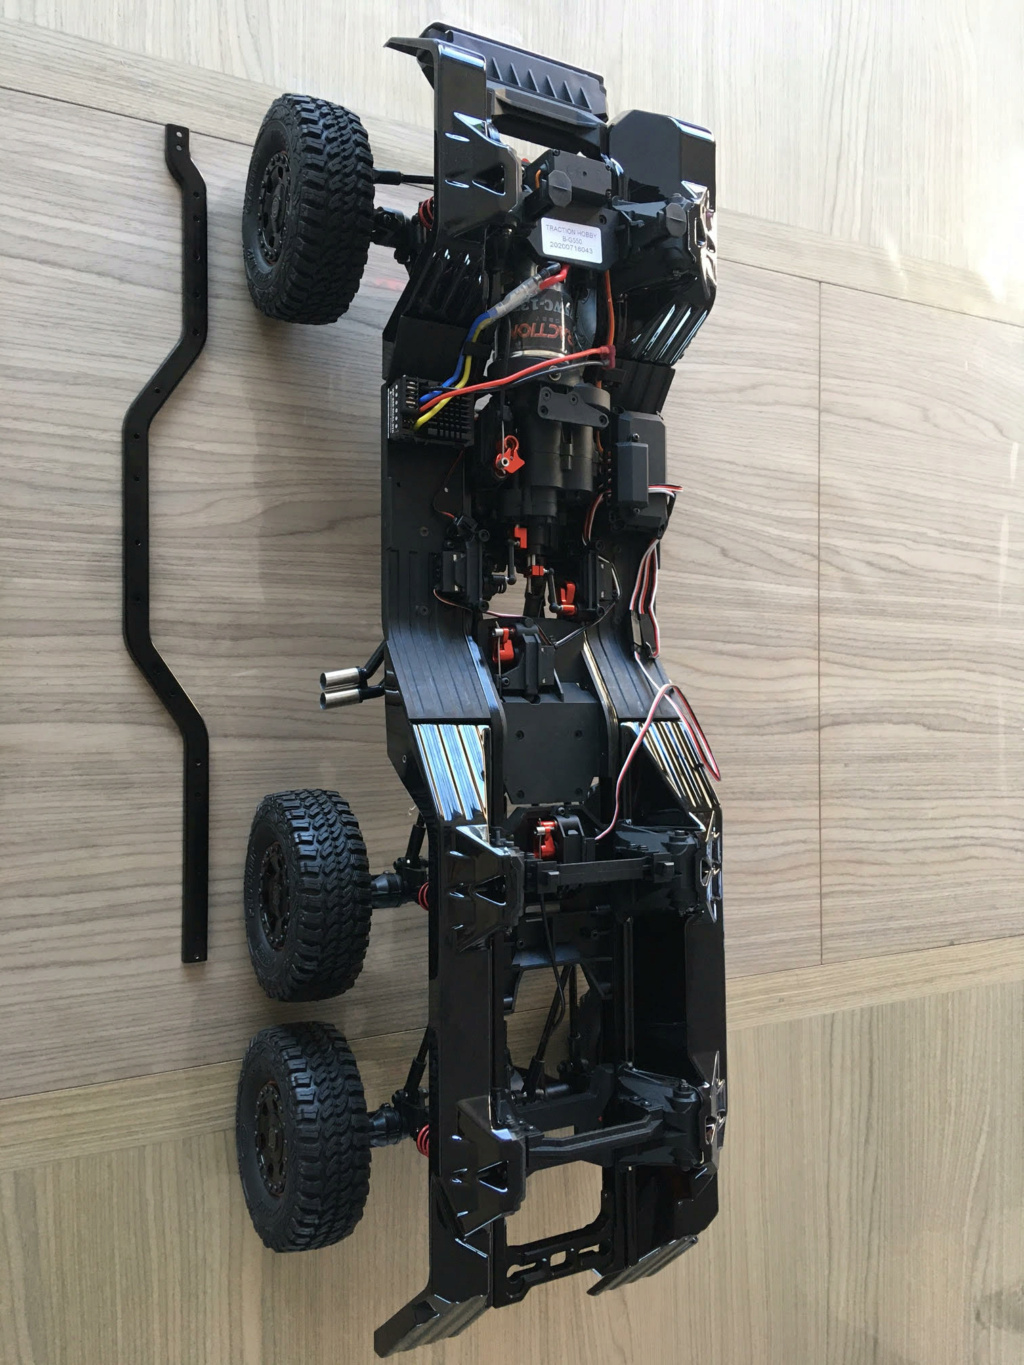 Traction Hobby B-G550 4x4 vers G63 6x6 Unname43